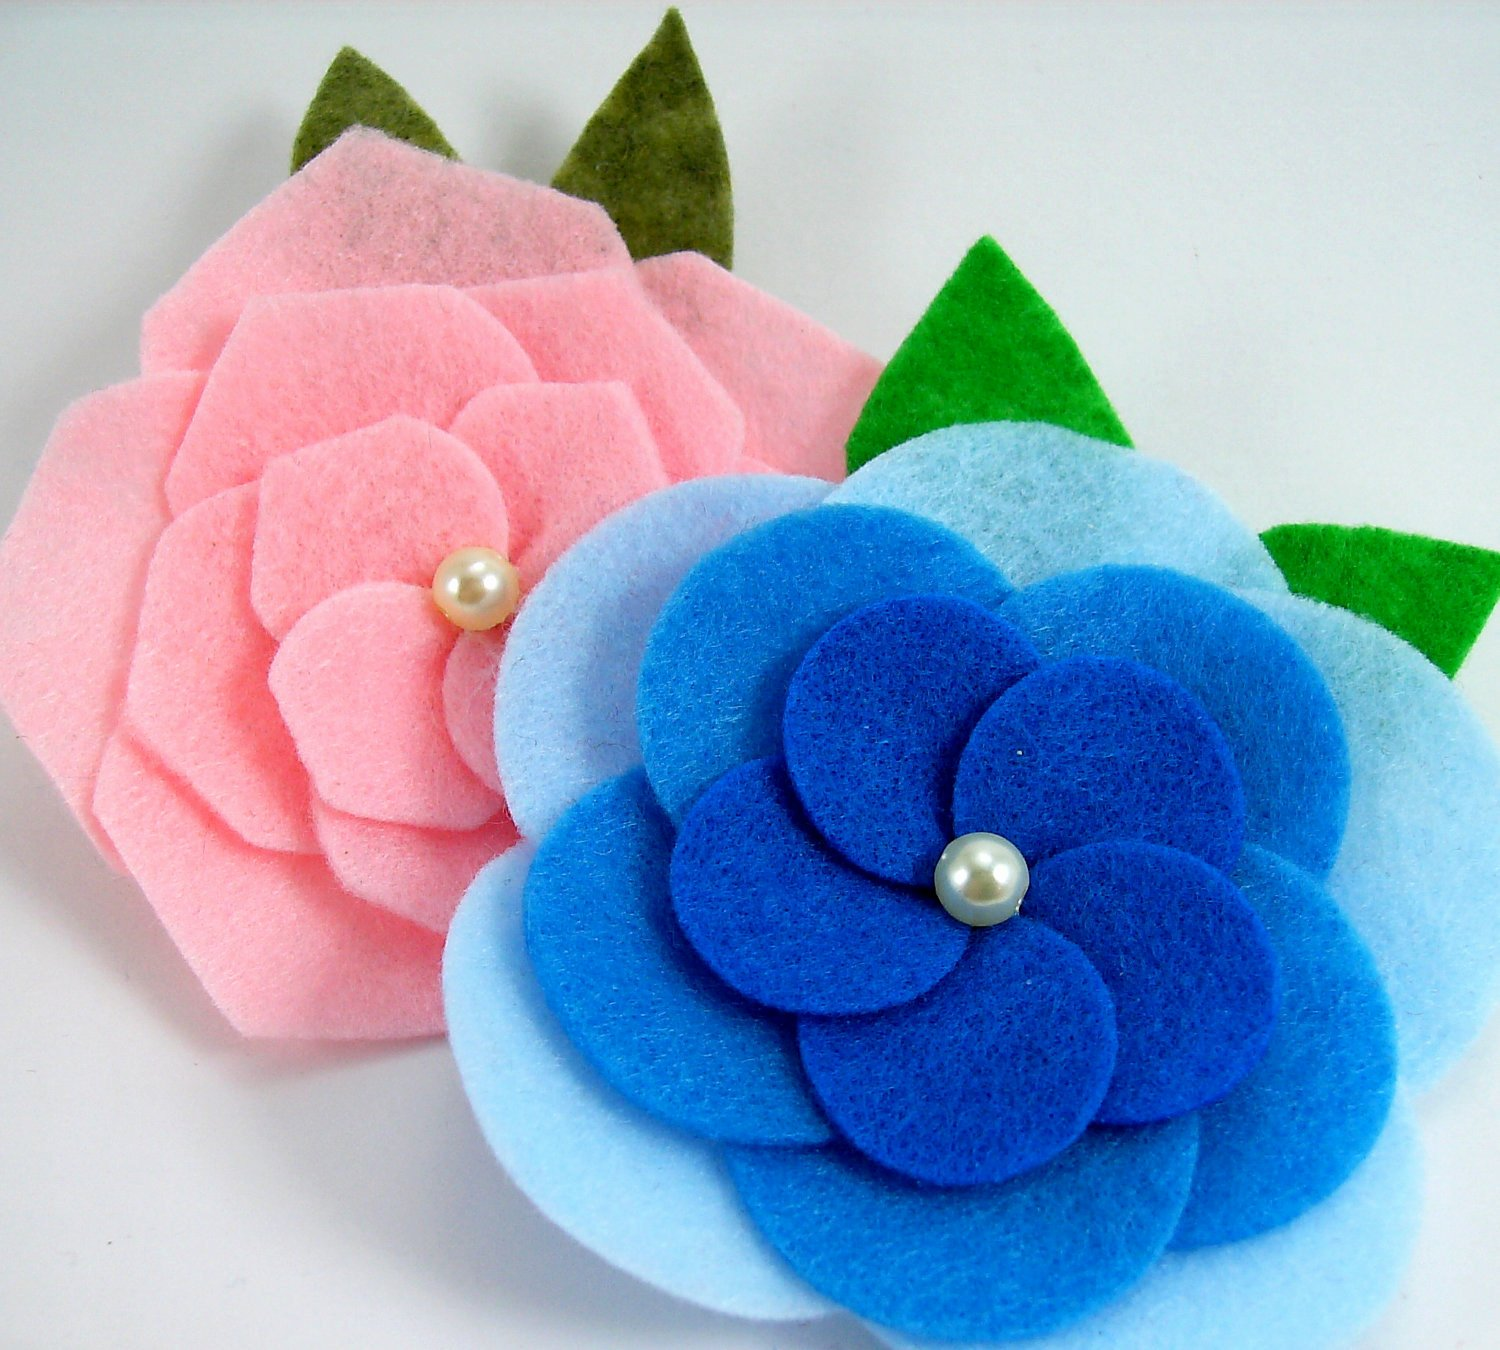 Felt Rose Pattern Elegant Felt Cabbage Roses Pdf Tutorial No Sewing Machine Required